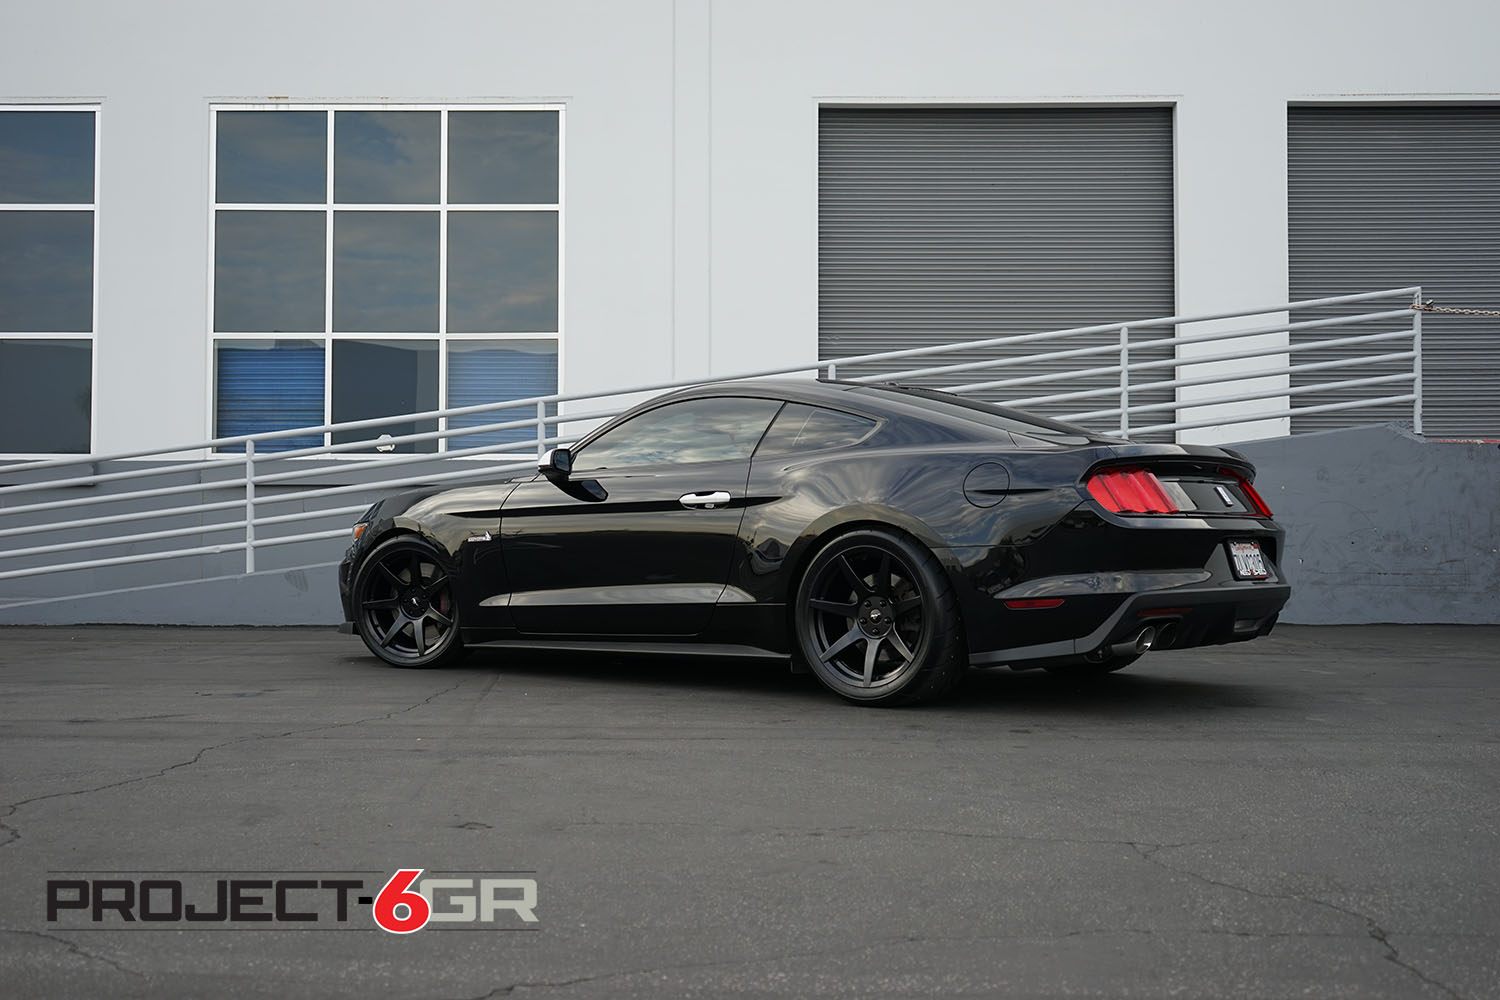 Roush Supercharged S550 Mustang Gt Meets Toyo R888 Tires